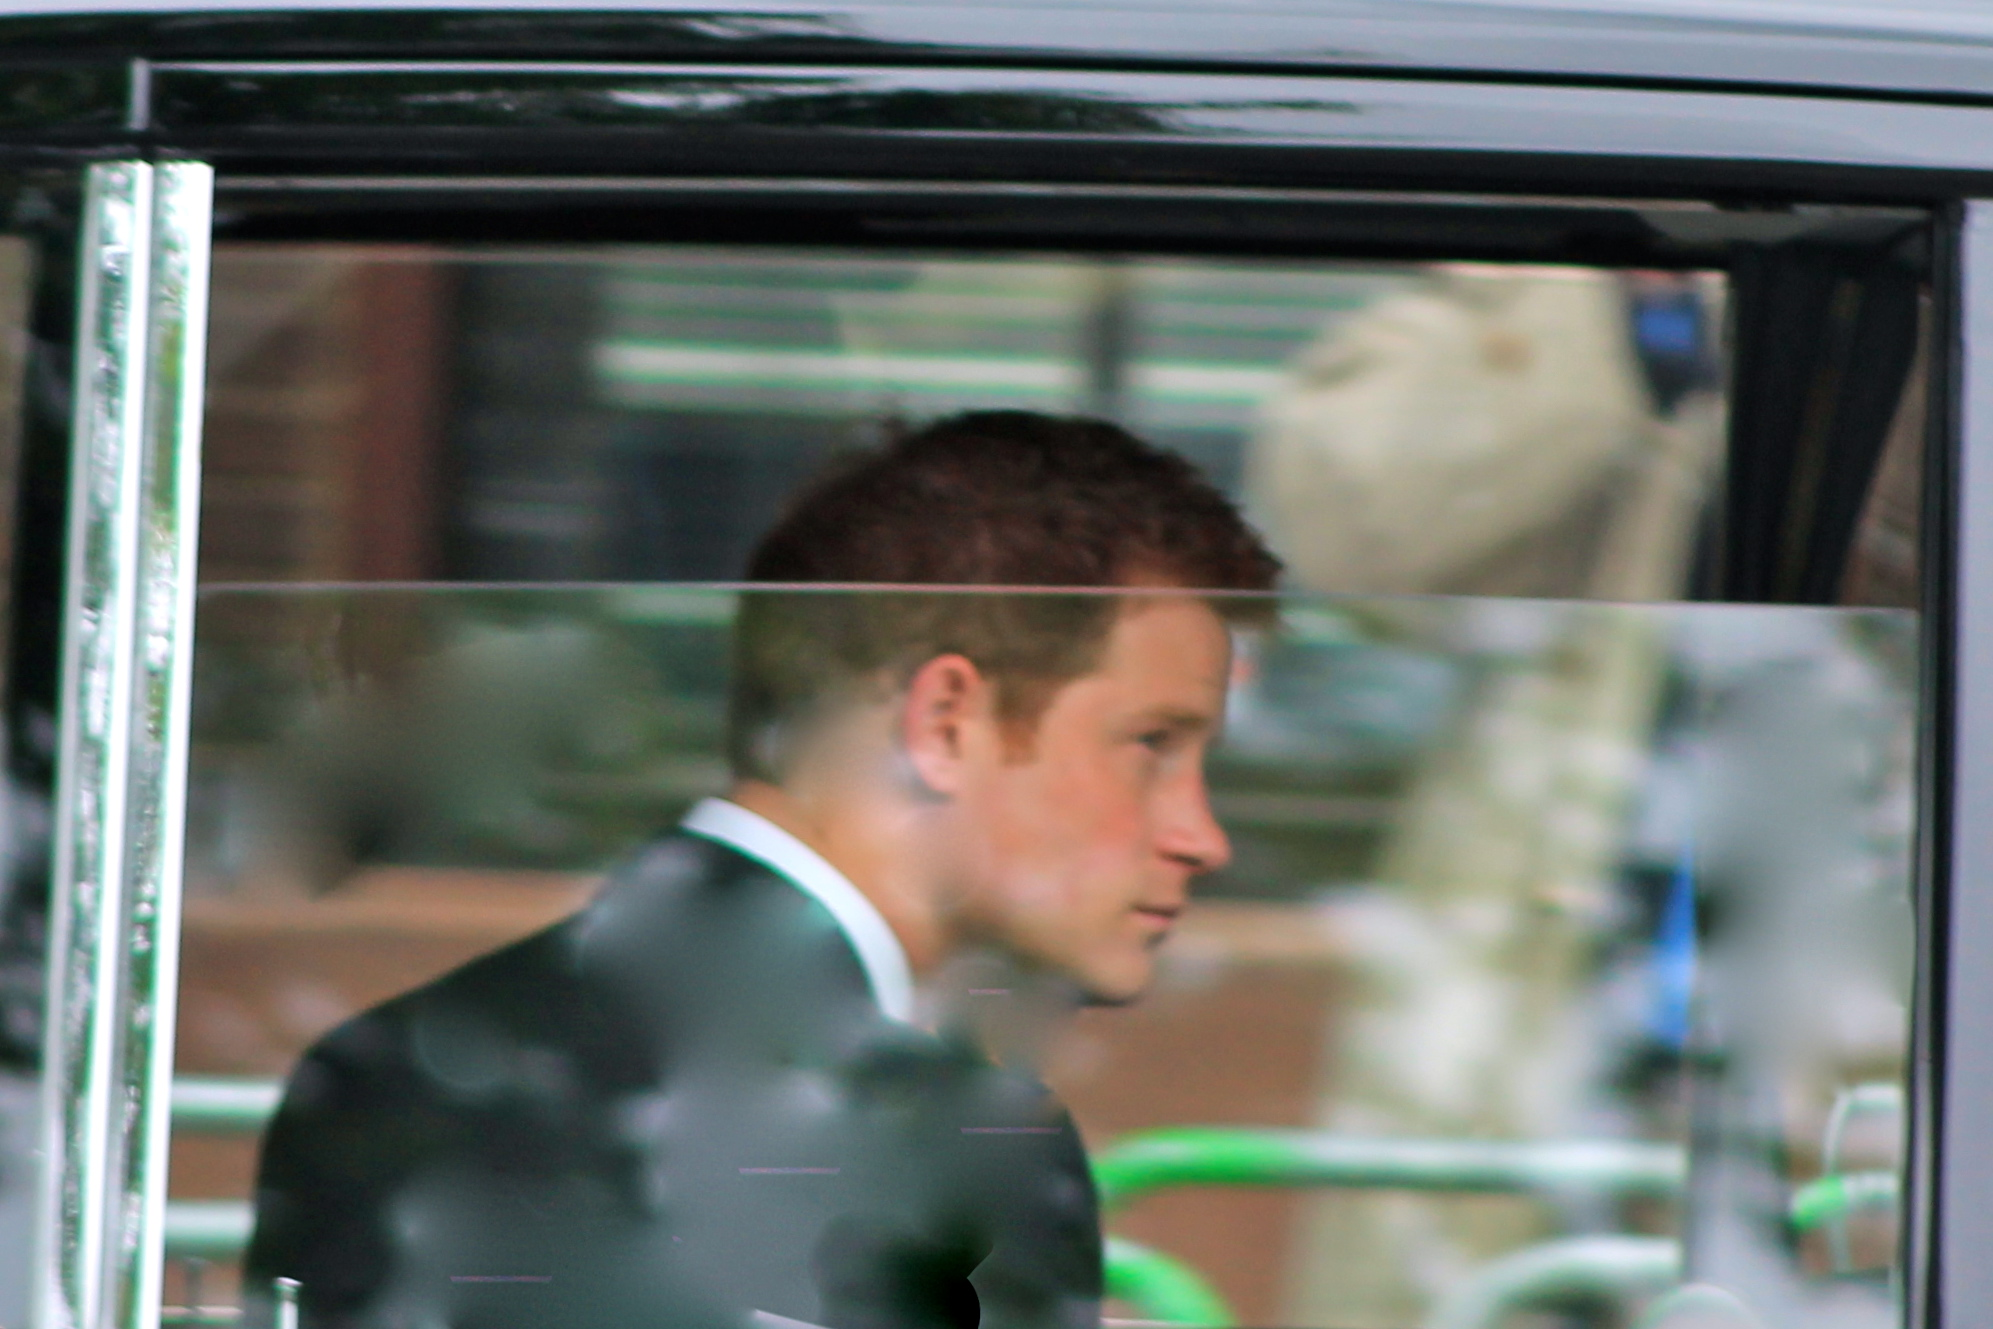 Prince Harry driving through the City of London during the Diamond Jubilee celebrations, 5 June 2012. By Carfax2, licensed under the Creative Commons Attribution-Share Alike 3.0 Unported license.